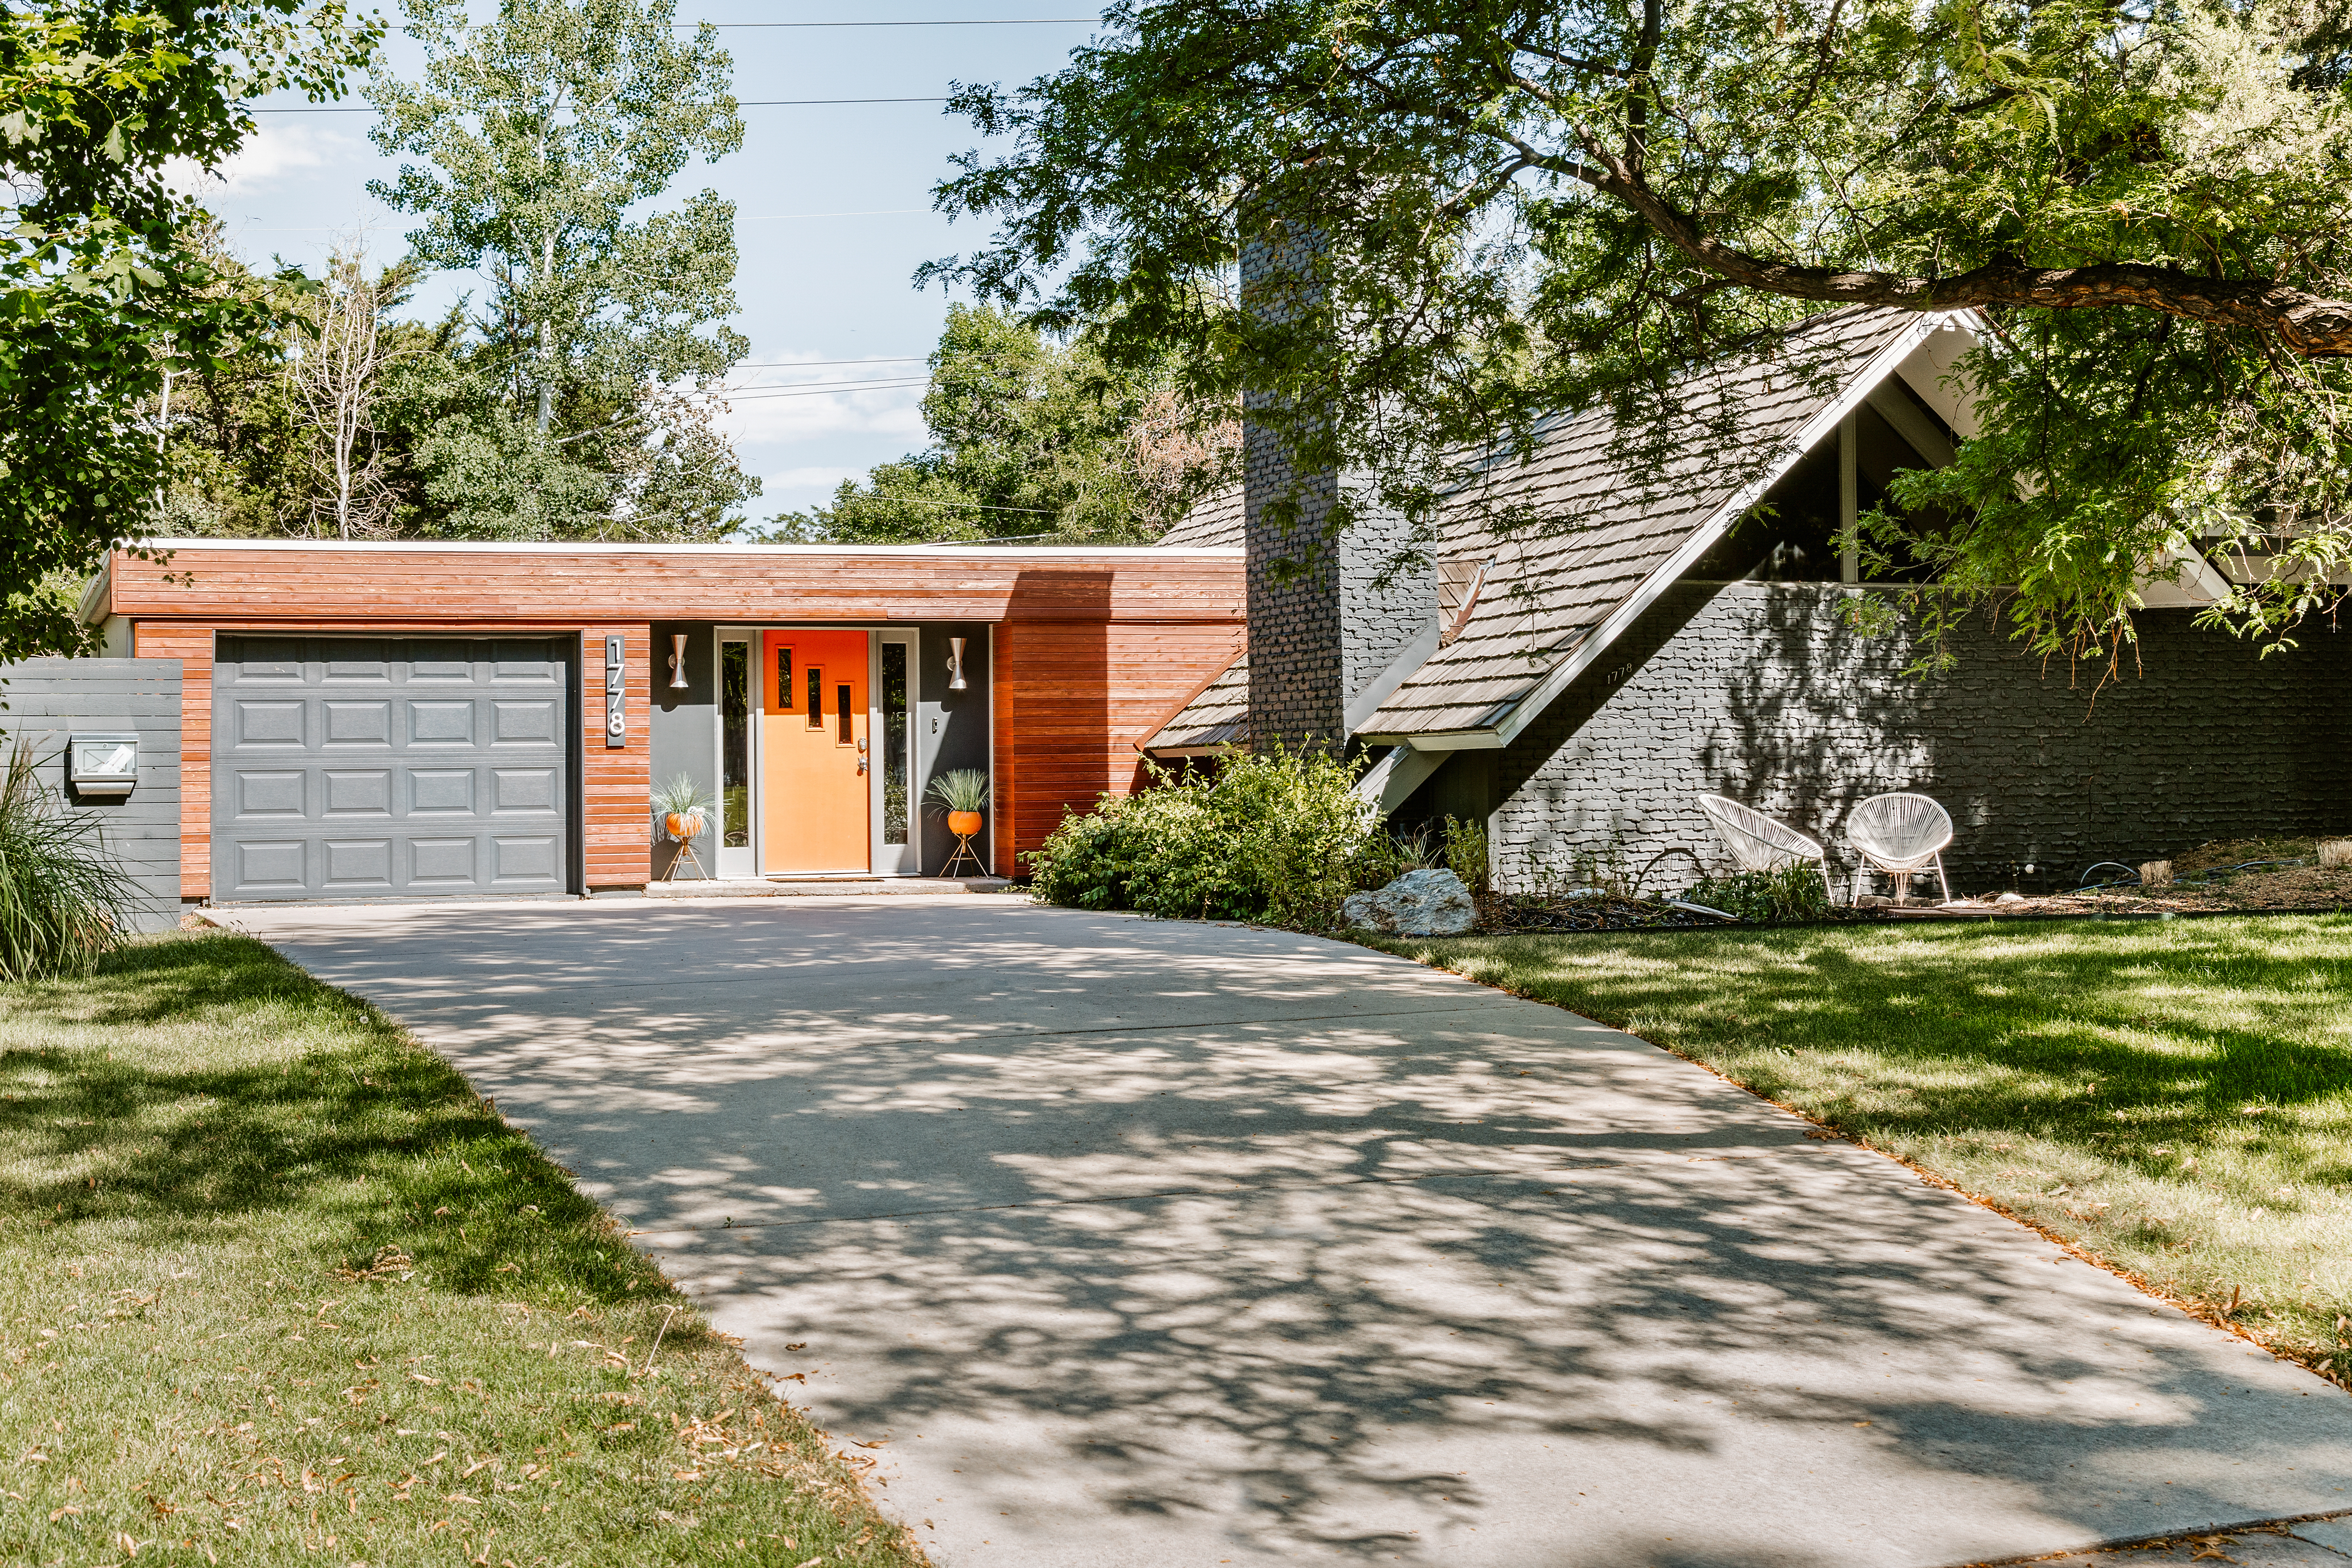 An exterior view of a midcentury home with a bright orange door, long driveway leading up to a two-car garage, and pitched A-frame style roof on the right.